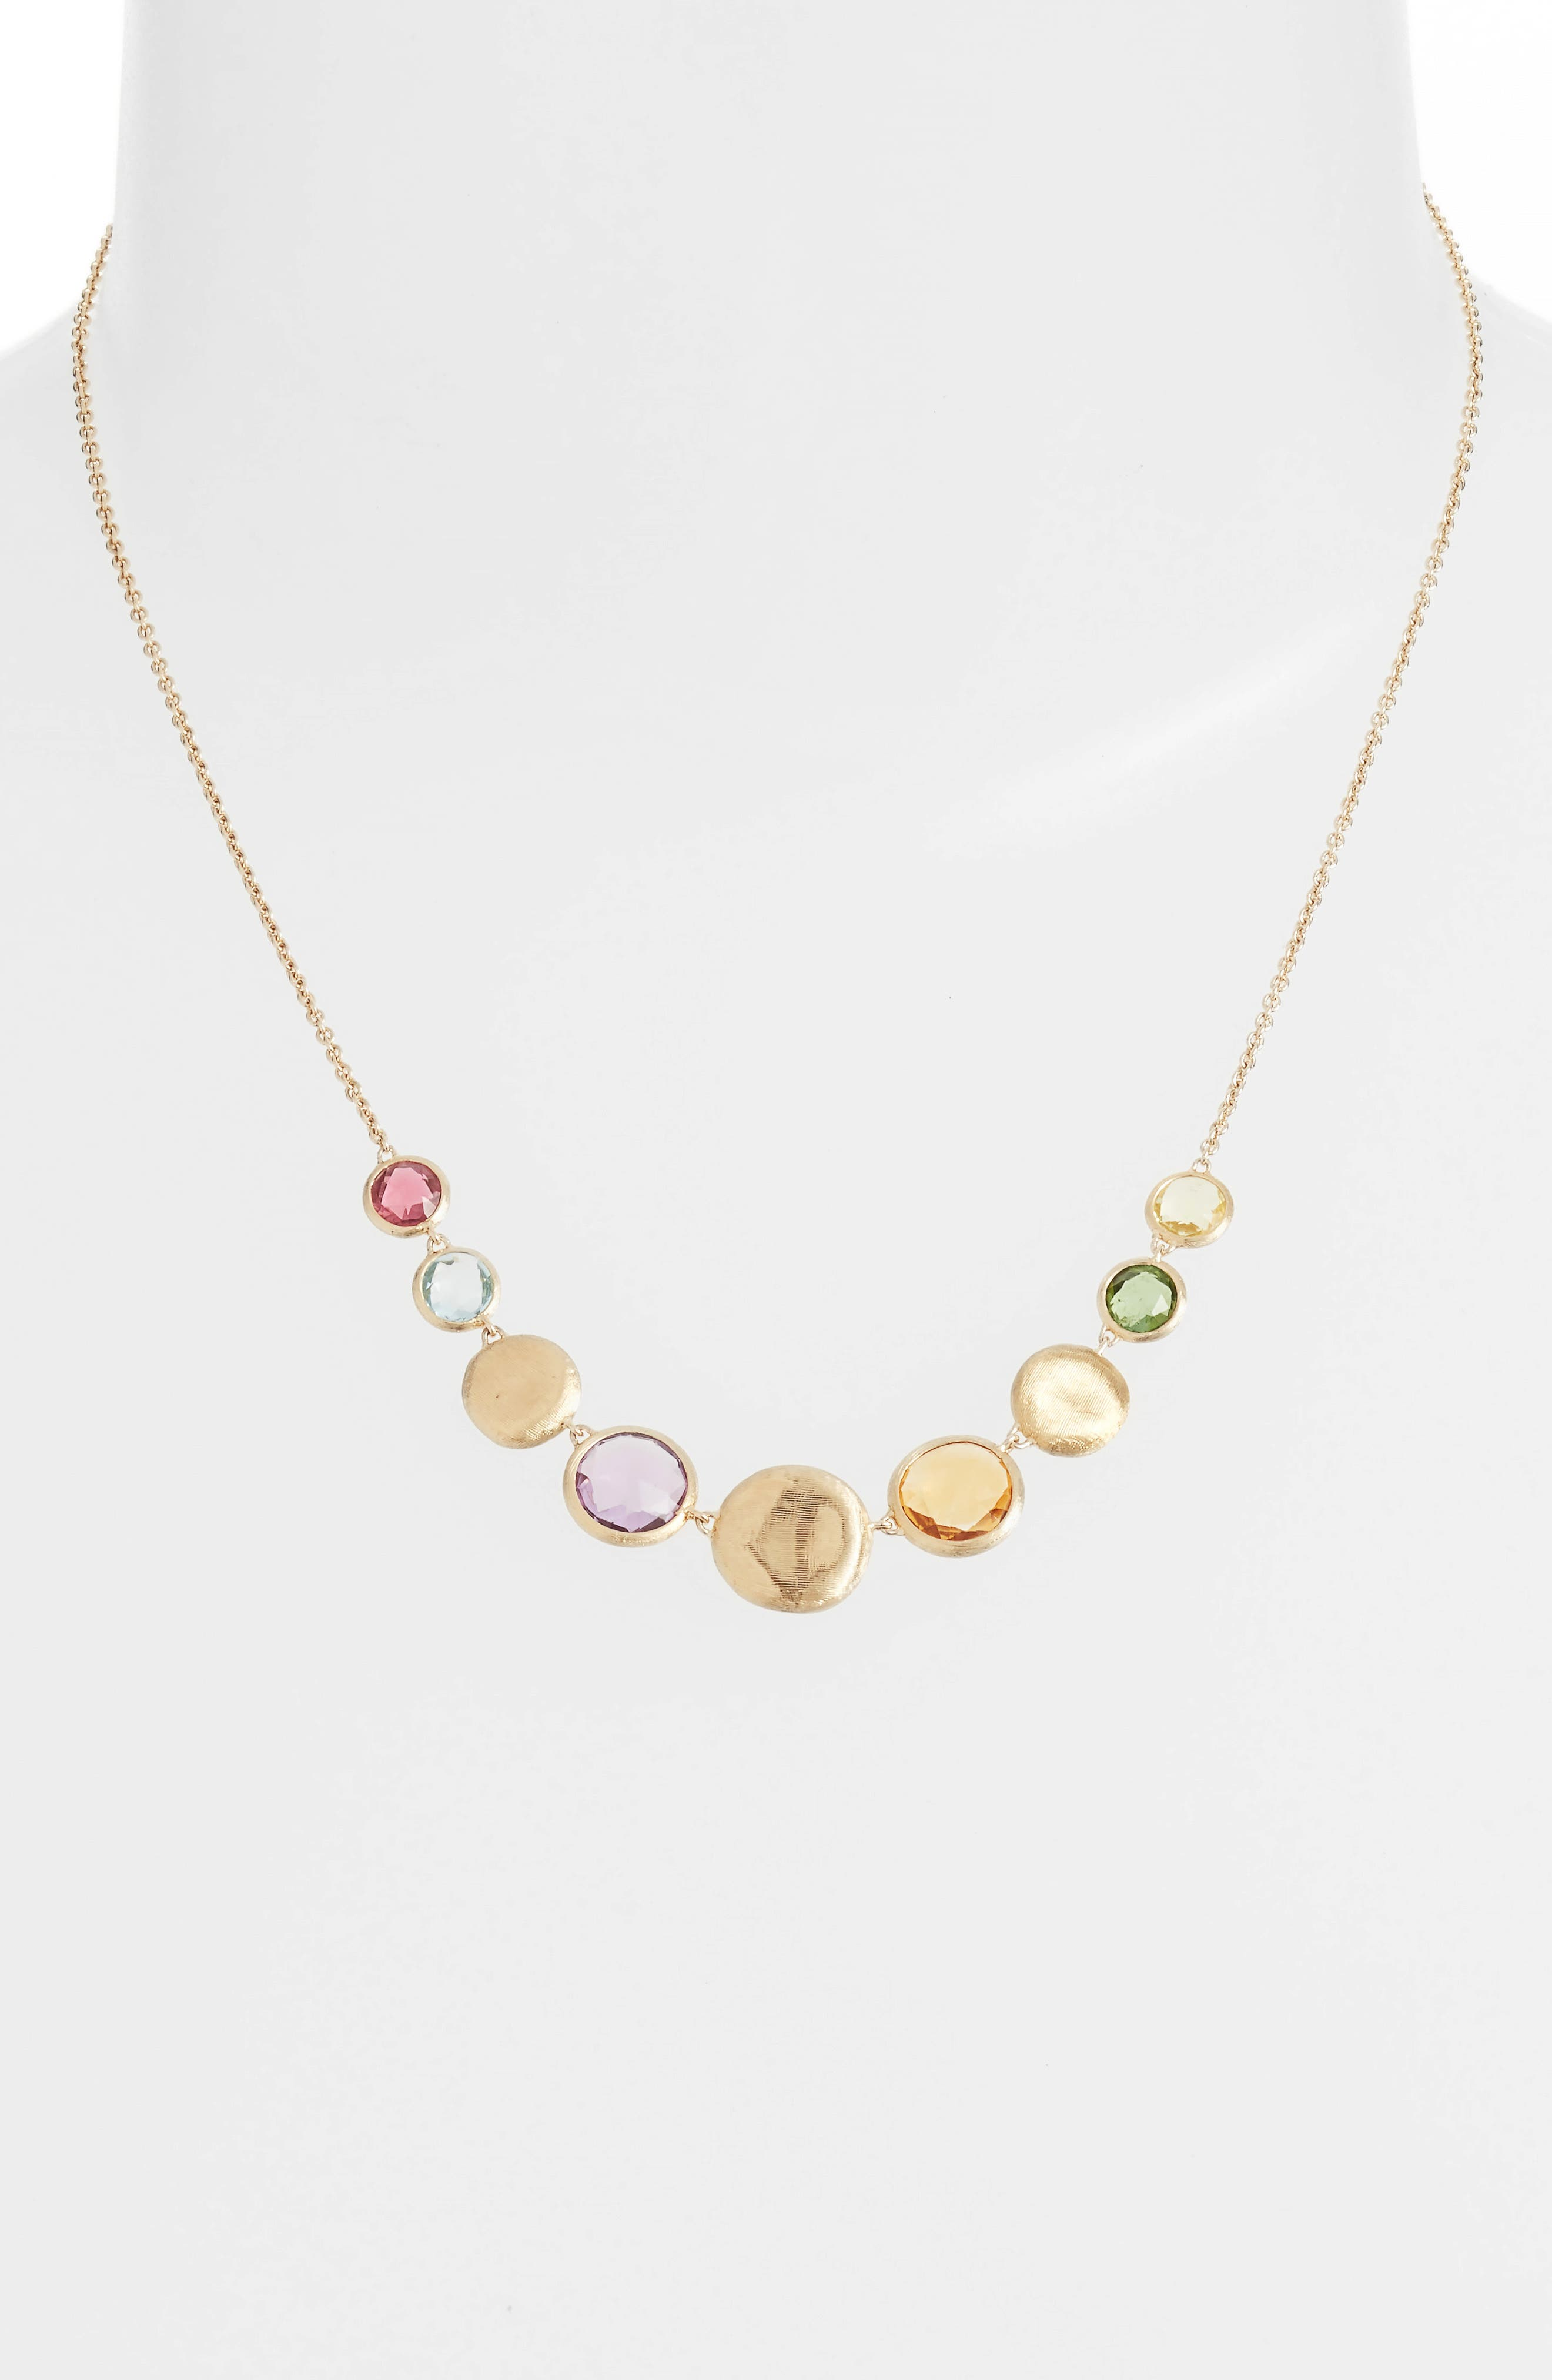 Jaipur Semiprecious Stone Collar Necklace,                             Alternate thumbnail 2, color,                             Yellow Gold